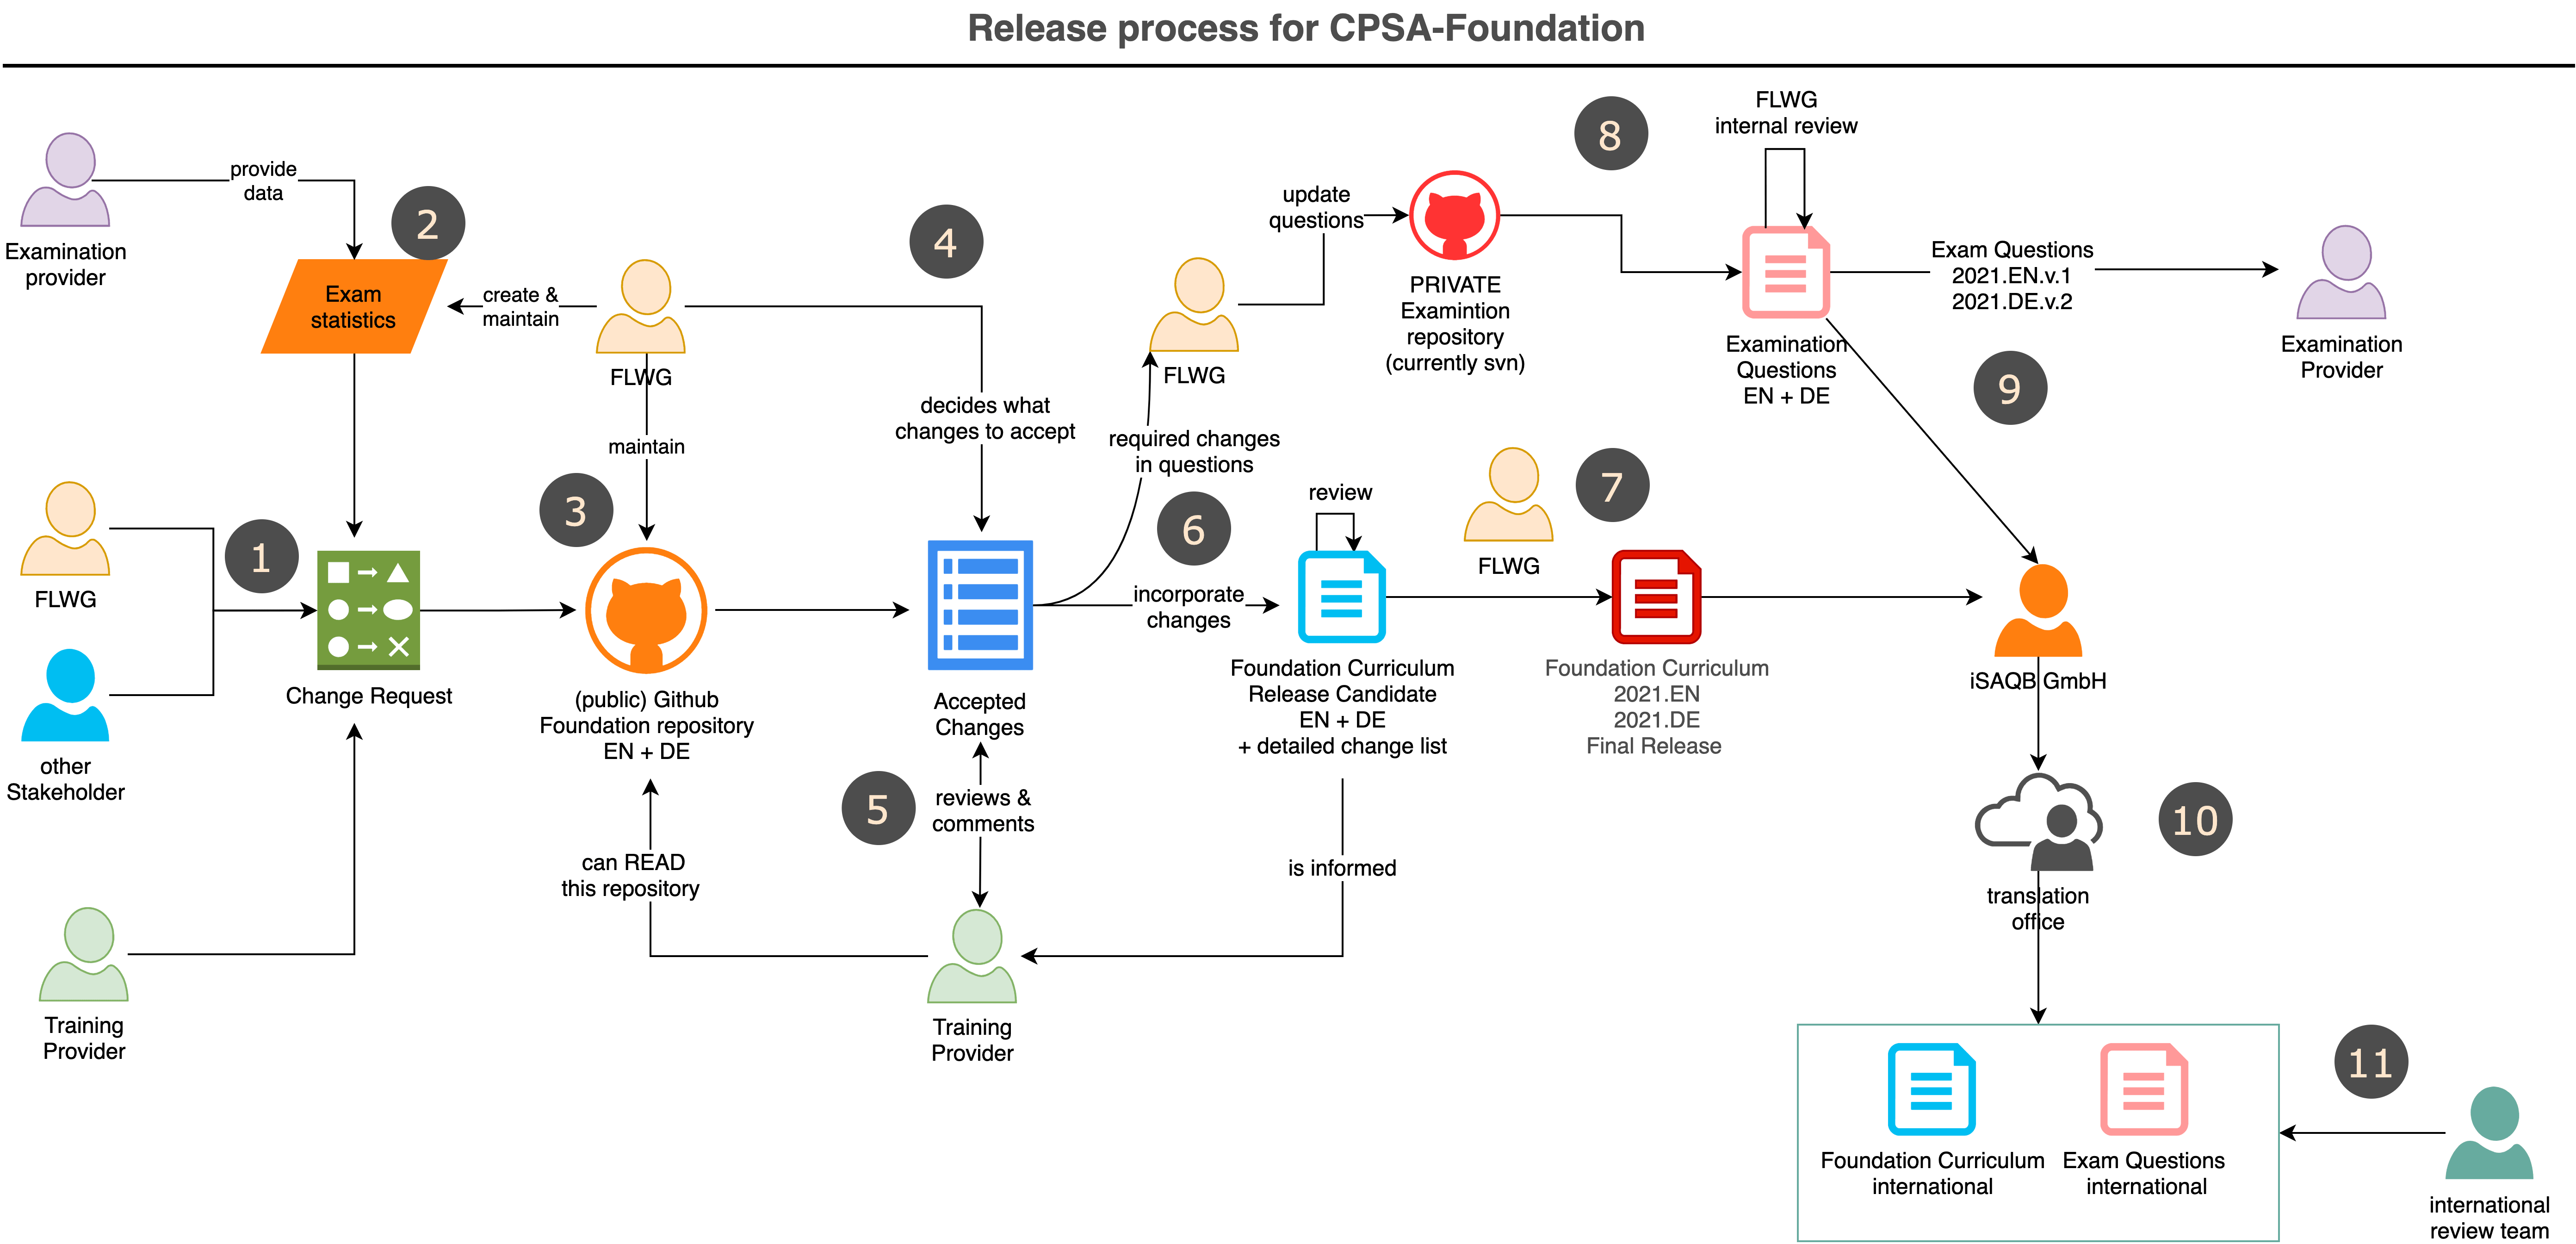 Release process for the Foundation curriculum